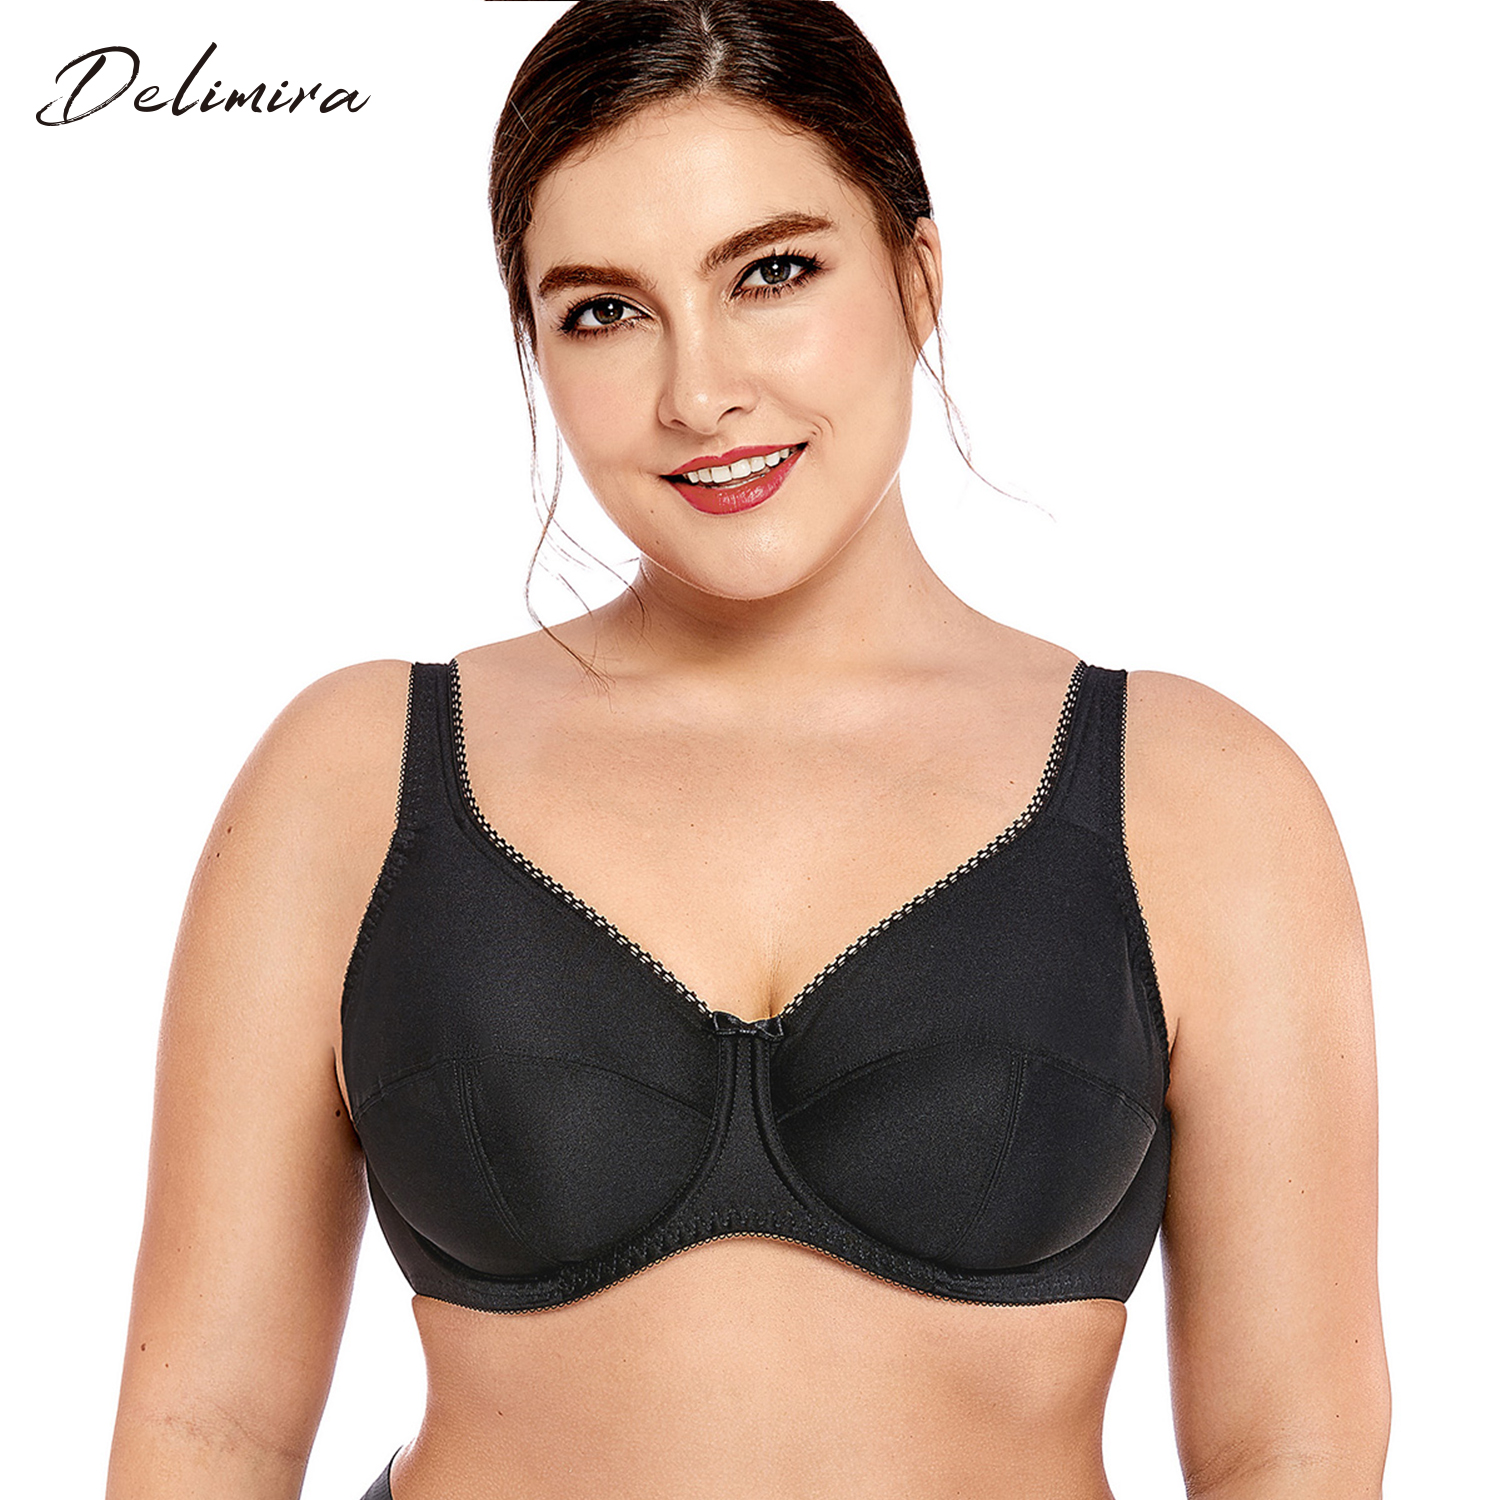 78058698046b4 DELIMIRA Women s Plus Size Full Coverage Non Padded Firm Support Control  Underwired Bra-in Bras from Underwear   Sleepwears on Aliexpress.com